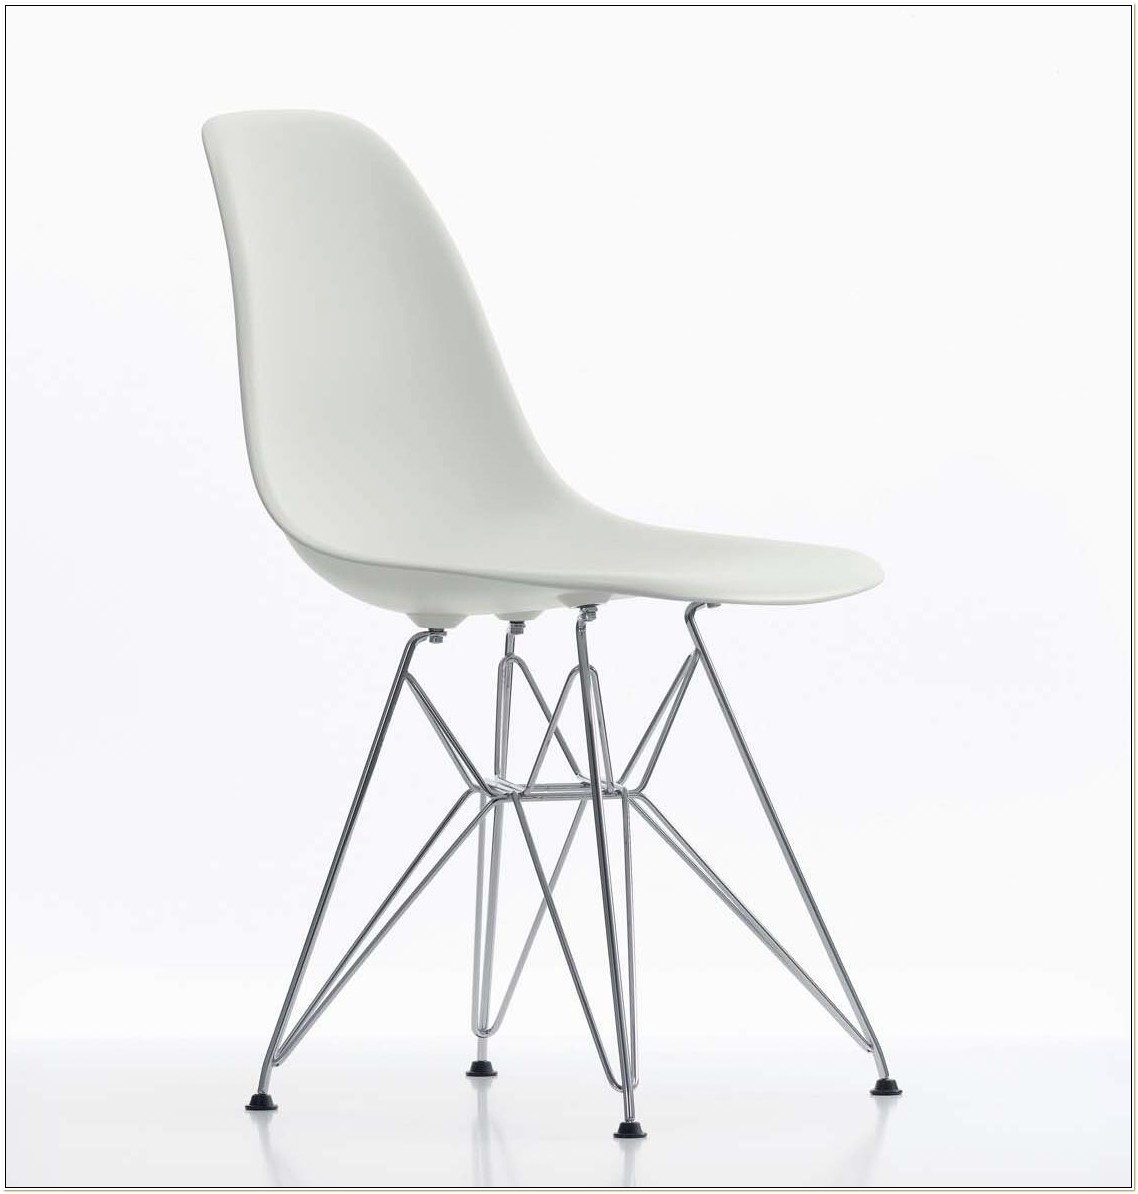 Charles Ray Eames Plastic Side Chair